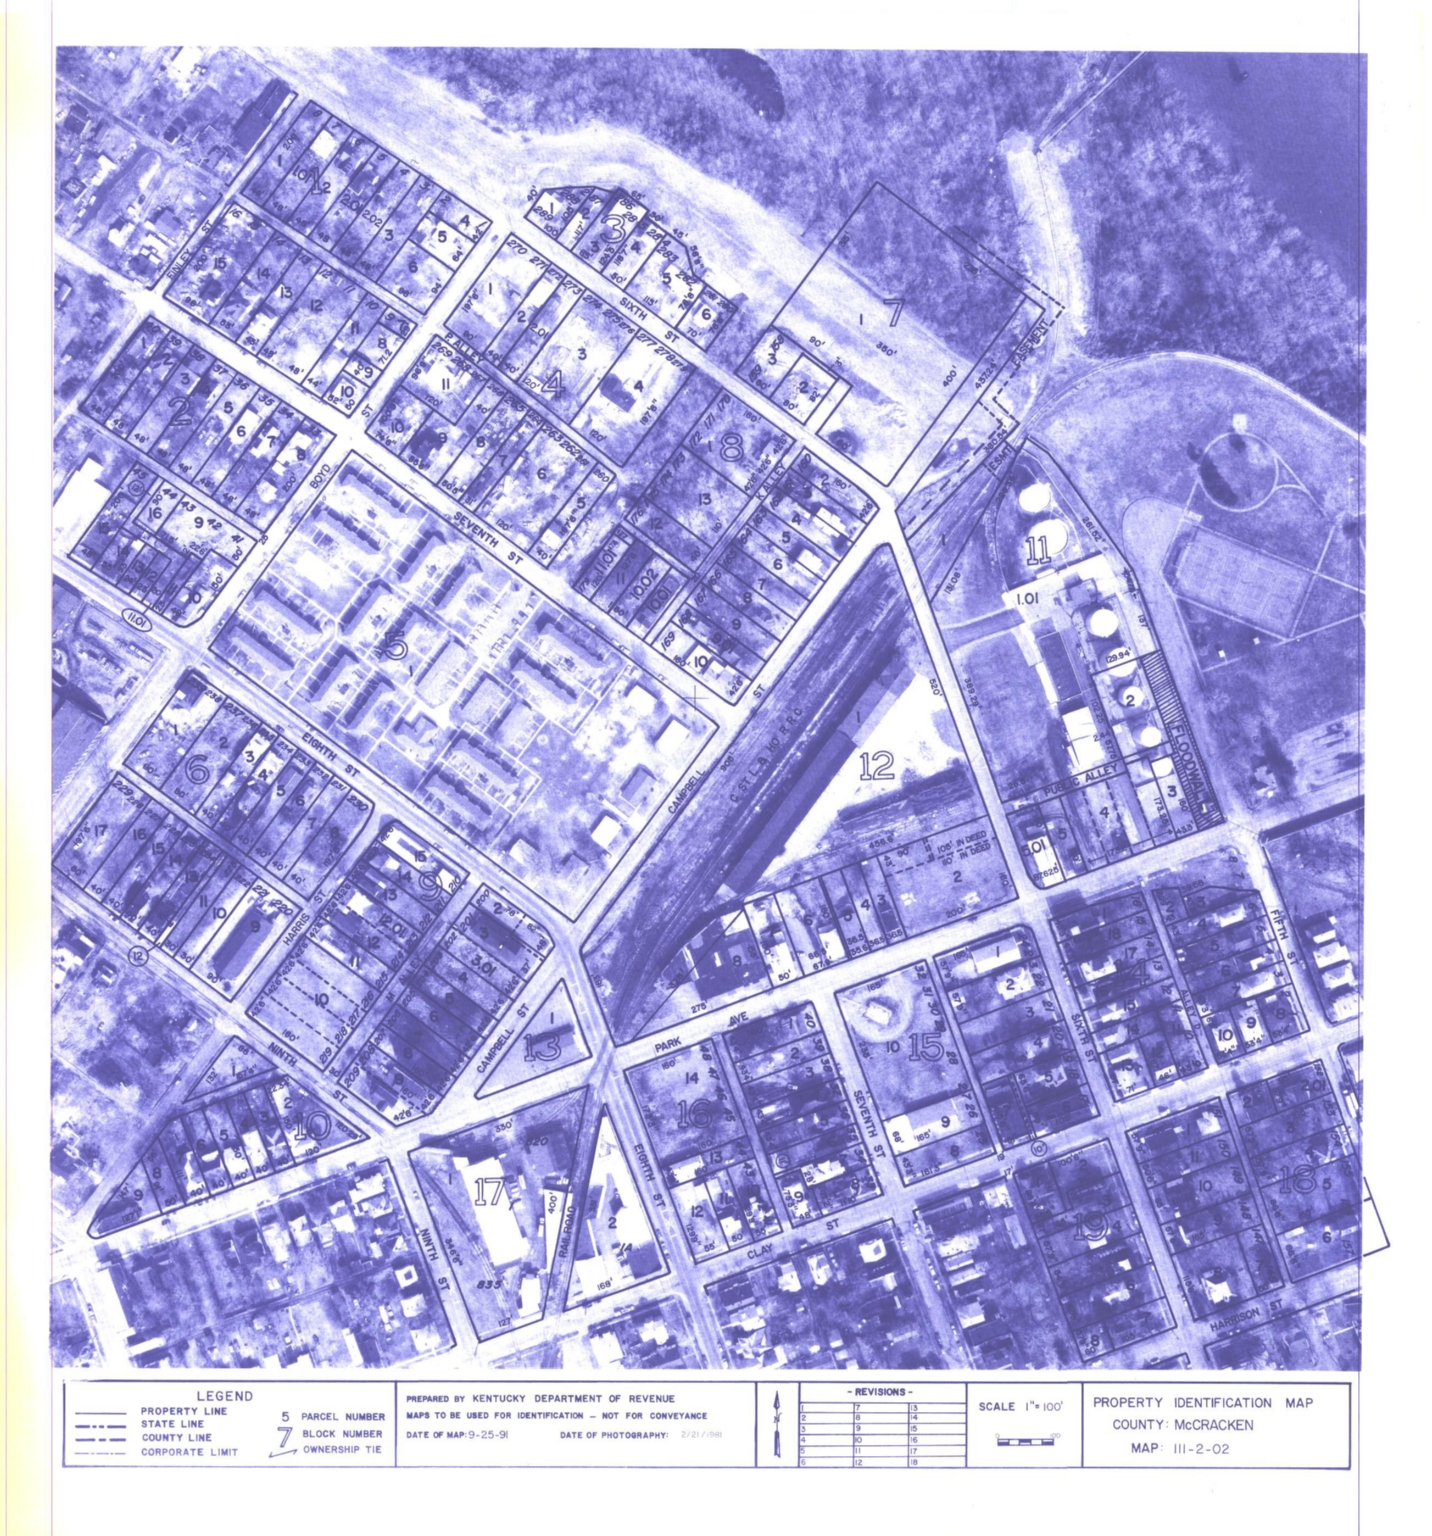 Property Identification Map McCracken County, Map 111-2-02